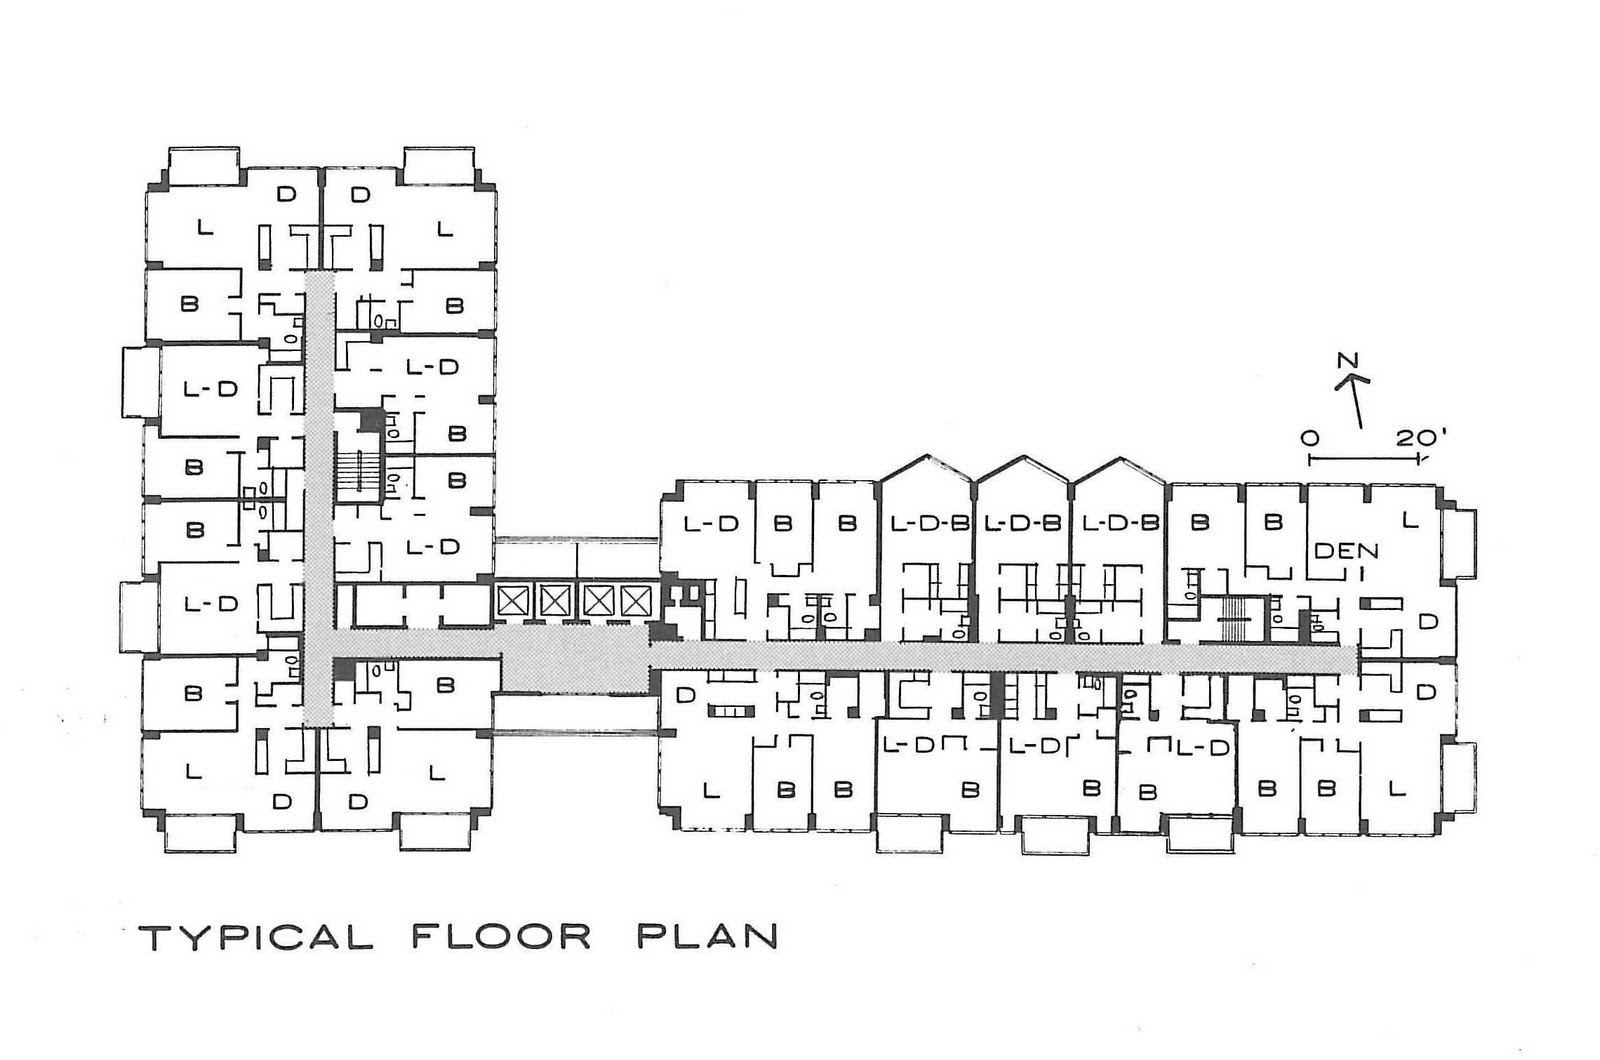 4 1 blogspot beyond the lakefront october 2011 L shaped building floor plan